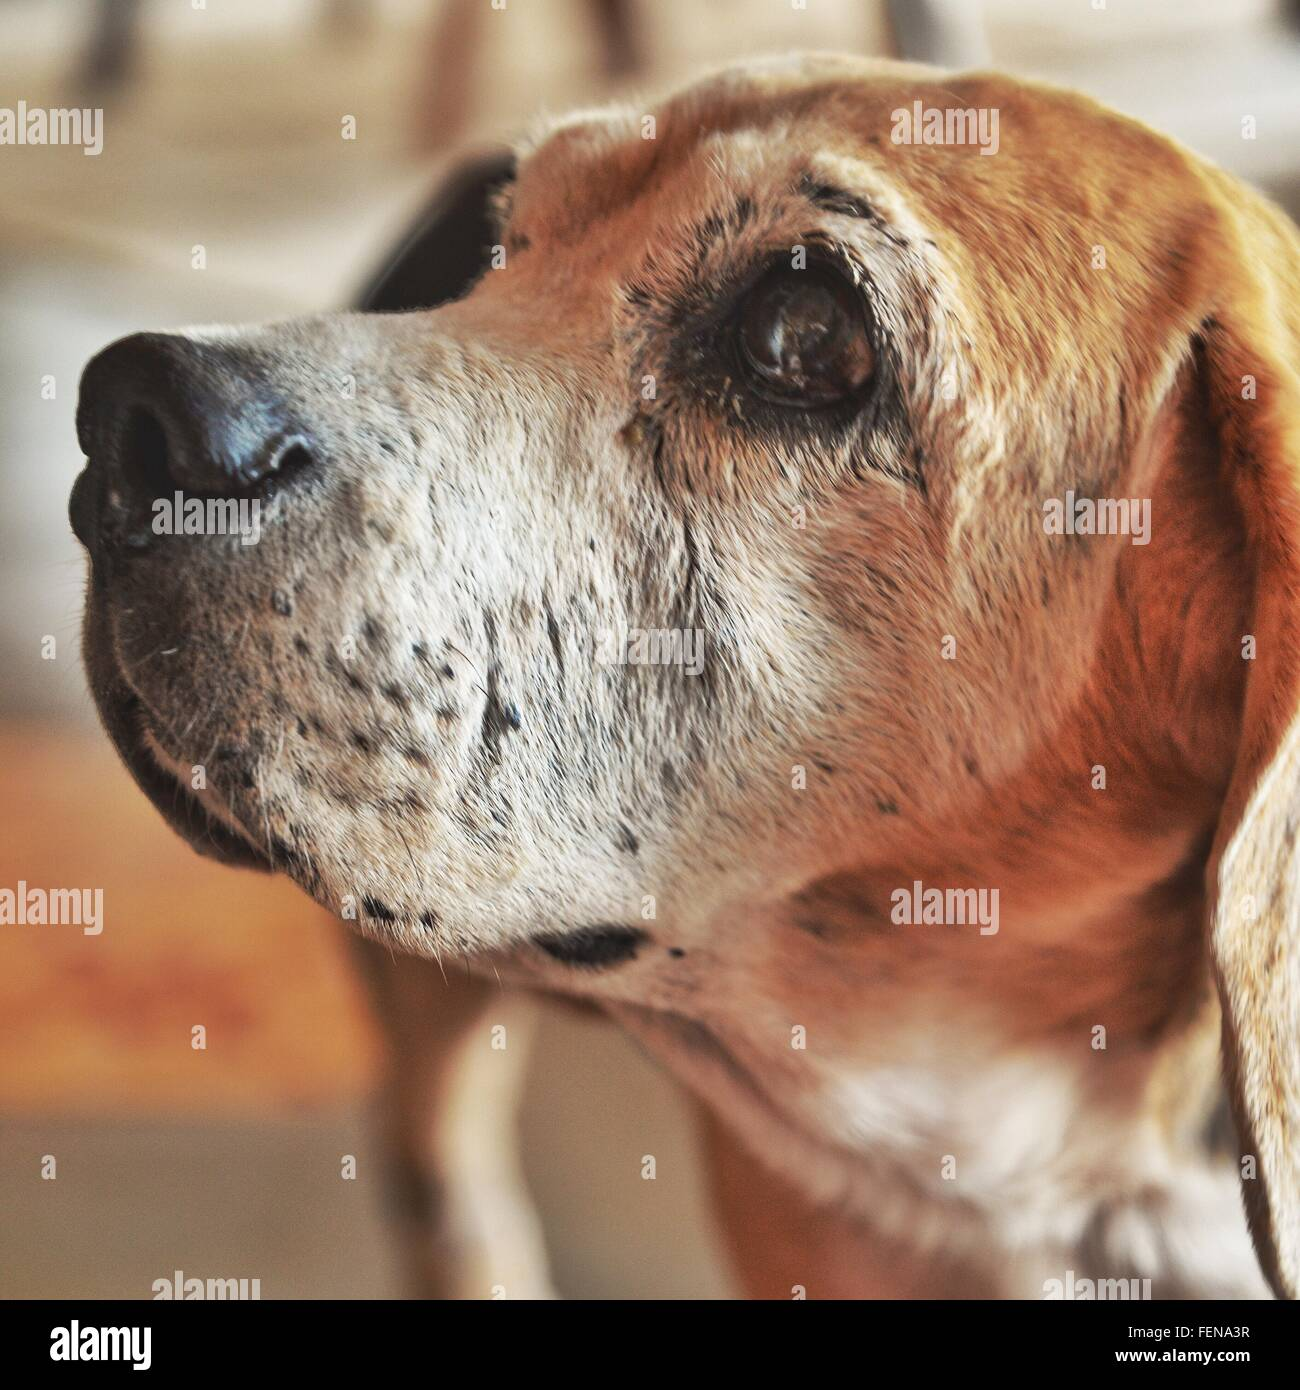 Close-Up Of Dog - Stock Image